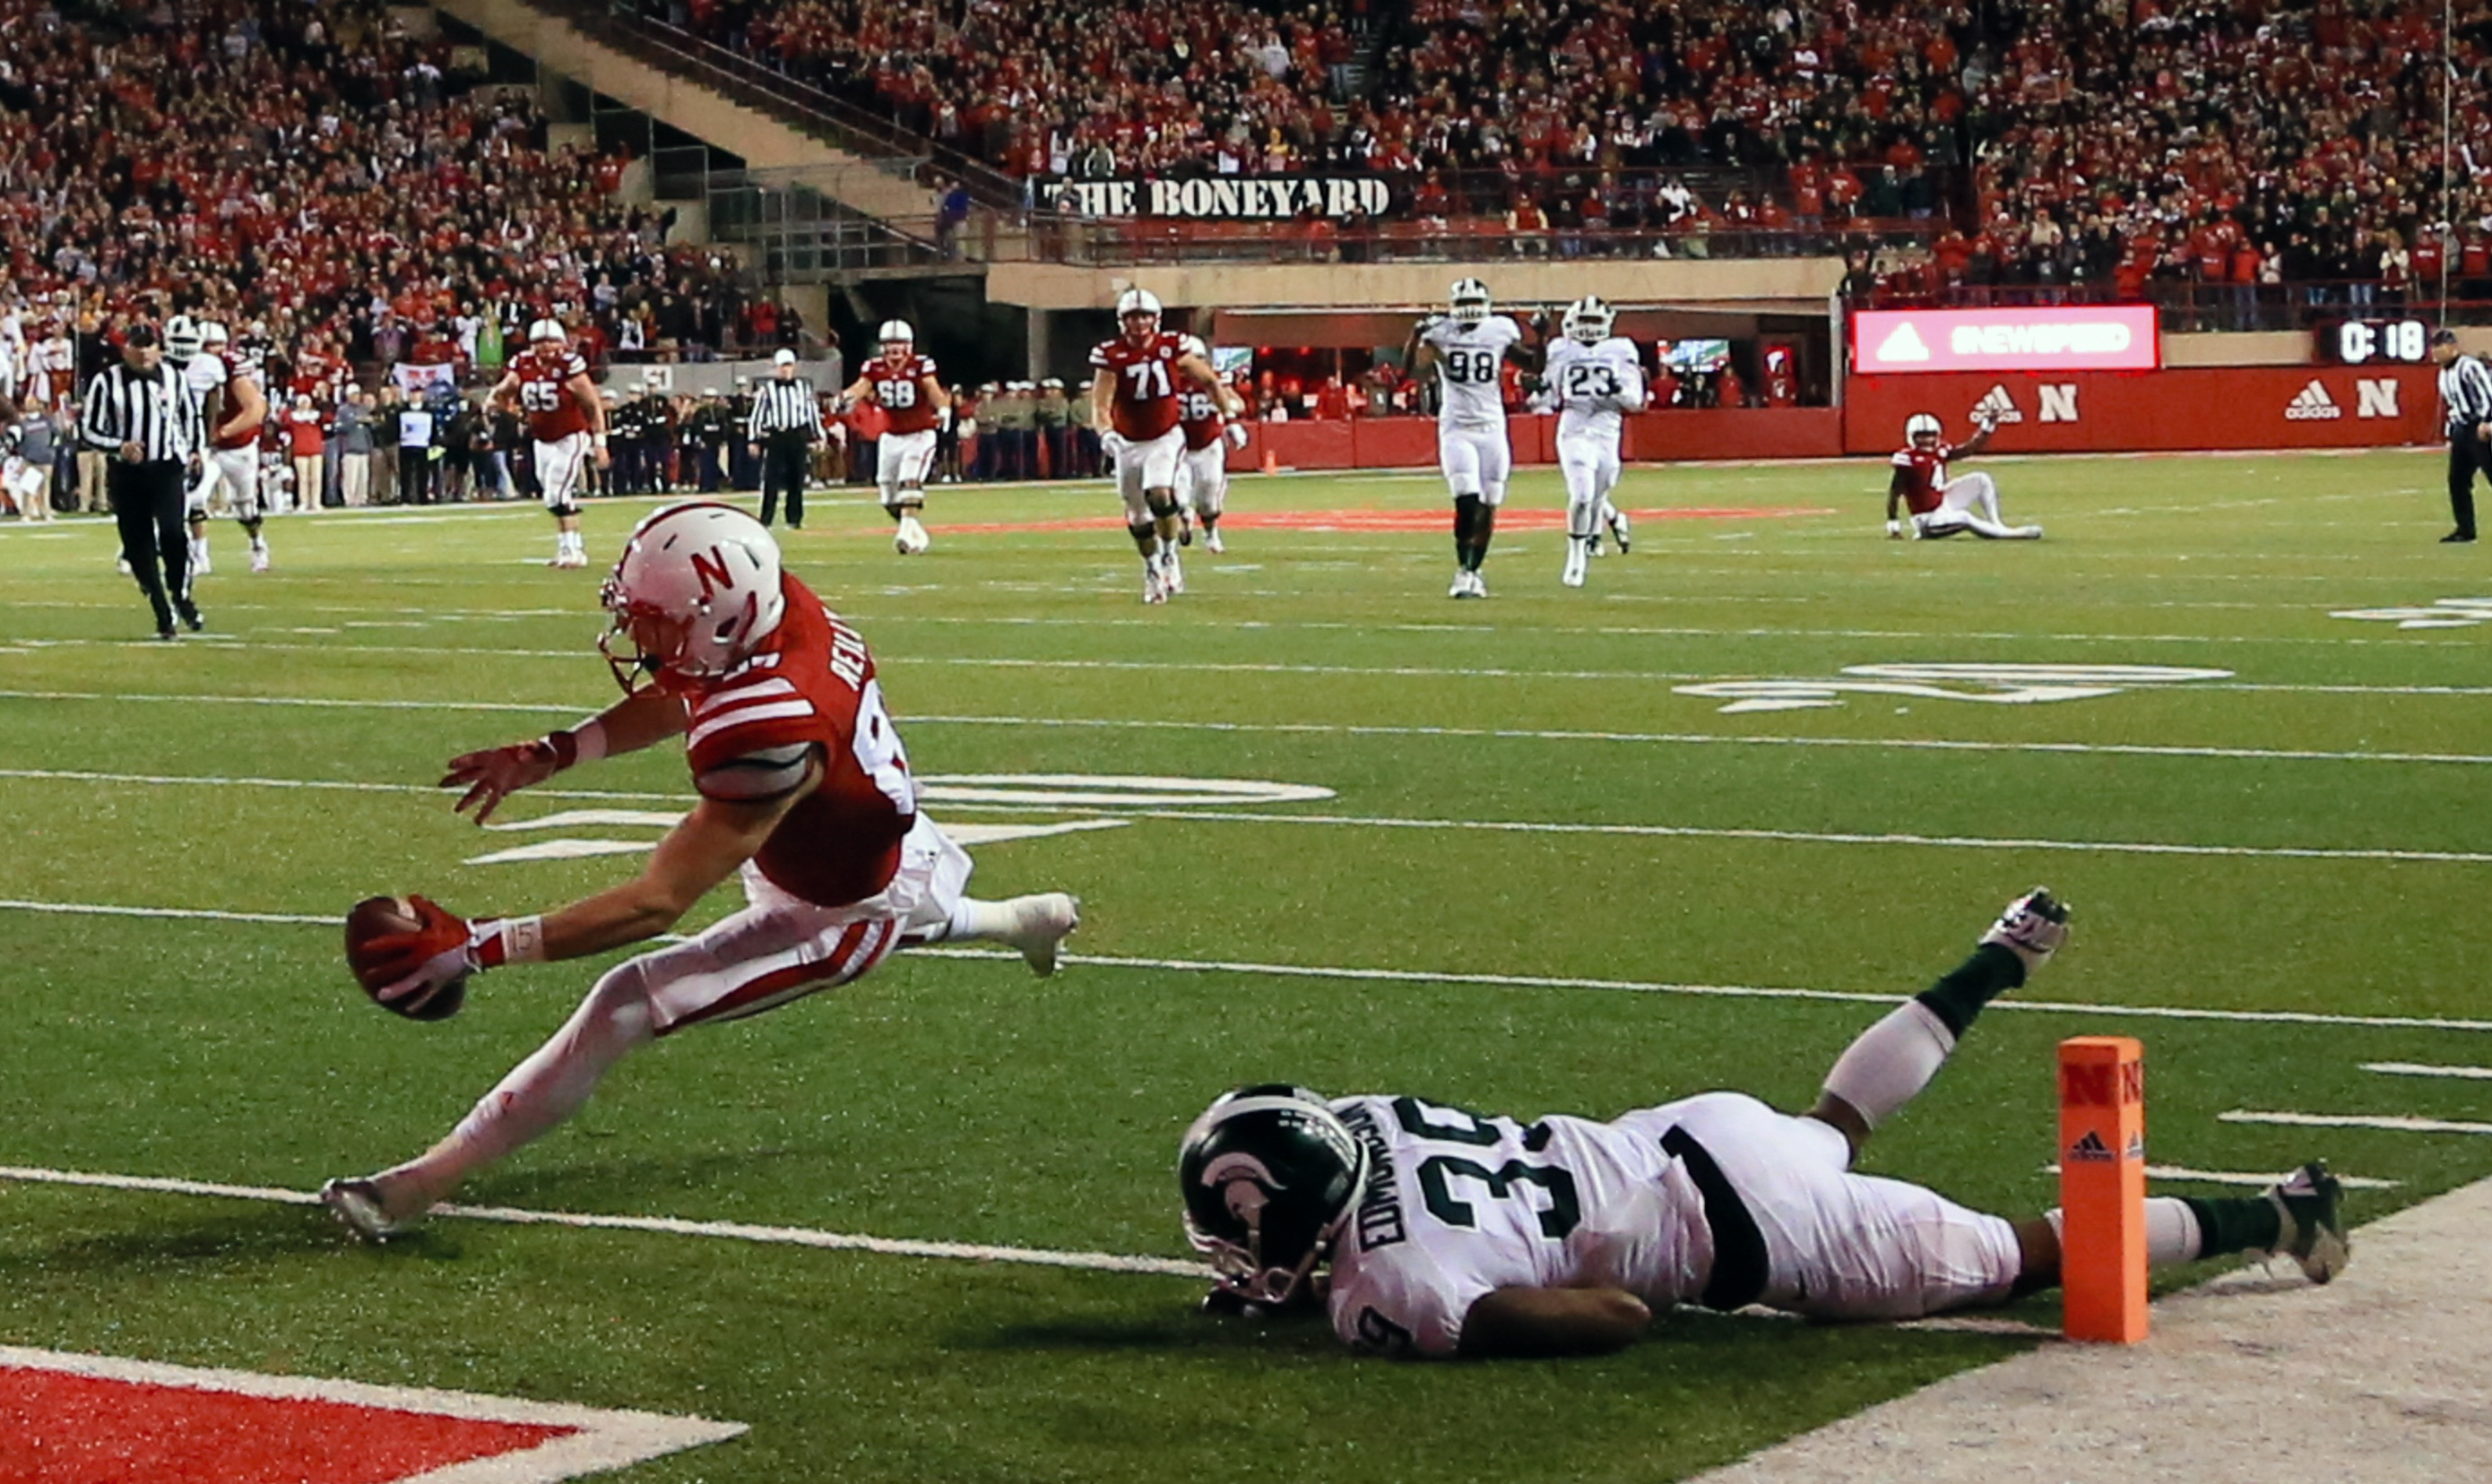 Nebraska wide receiver Brandon Reilly (87) scores a touchdown against Michigan State cornerback Jermaine Edmondson (39) during the second half of an NCAA college football game in Lincoln, Neb., Saturday, Nov. 7, 2015. Nebraska won 39-38. (AP Photo/Nati Ha